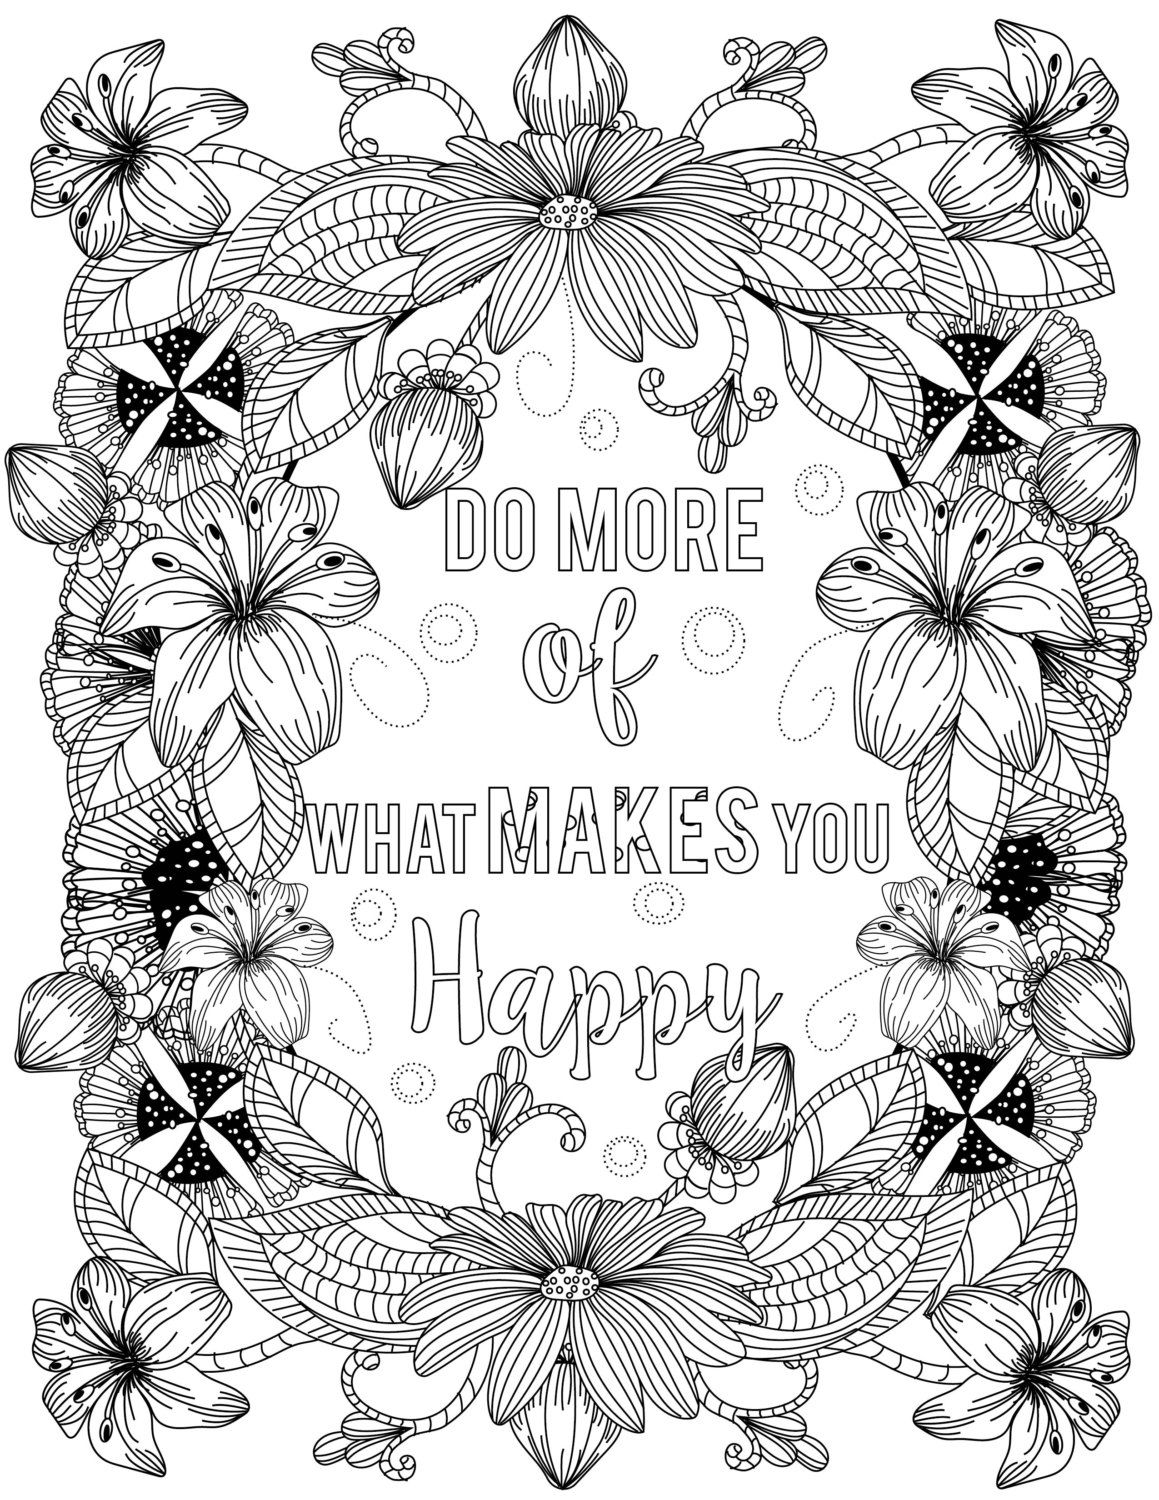 - Coloring Inspirational Quotes: The Uplifting By LiltColoringBooks